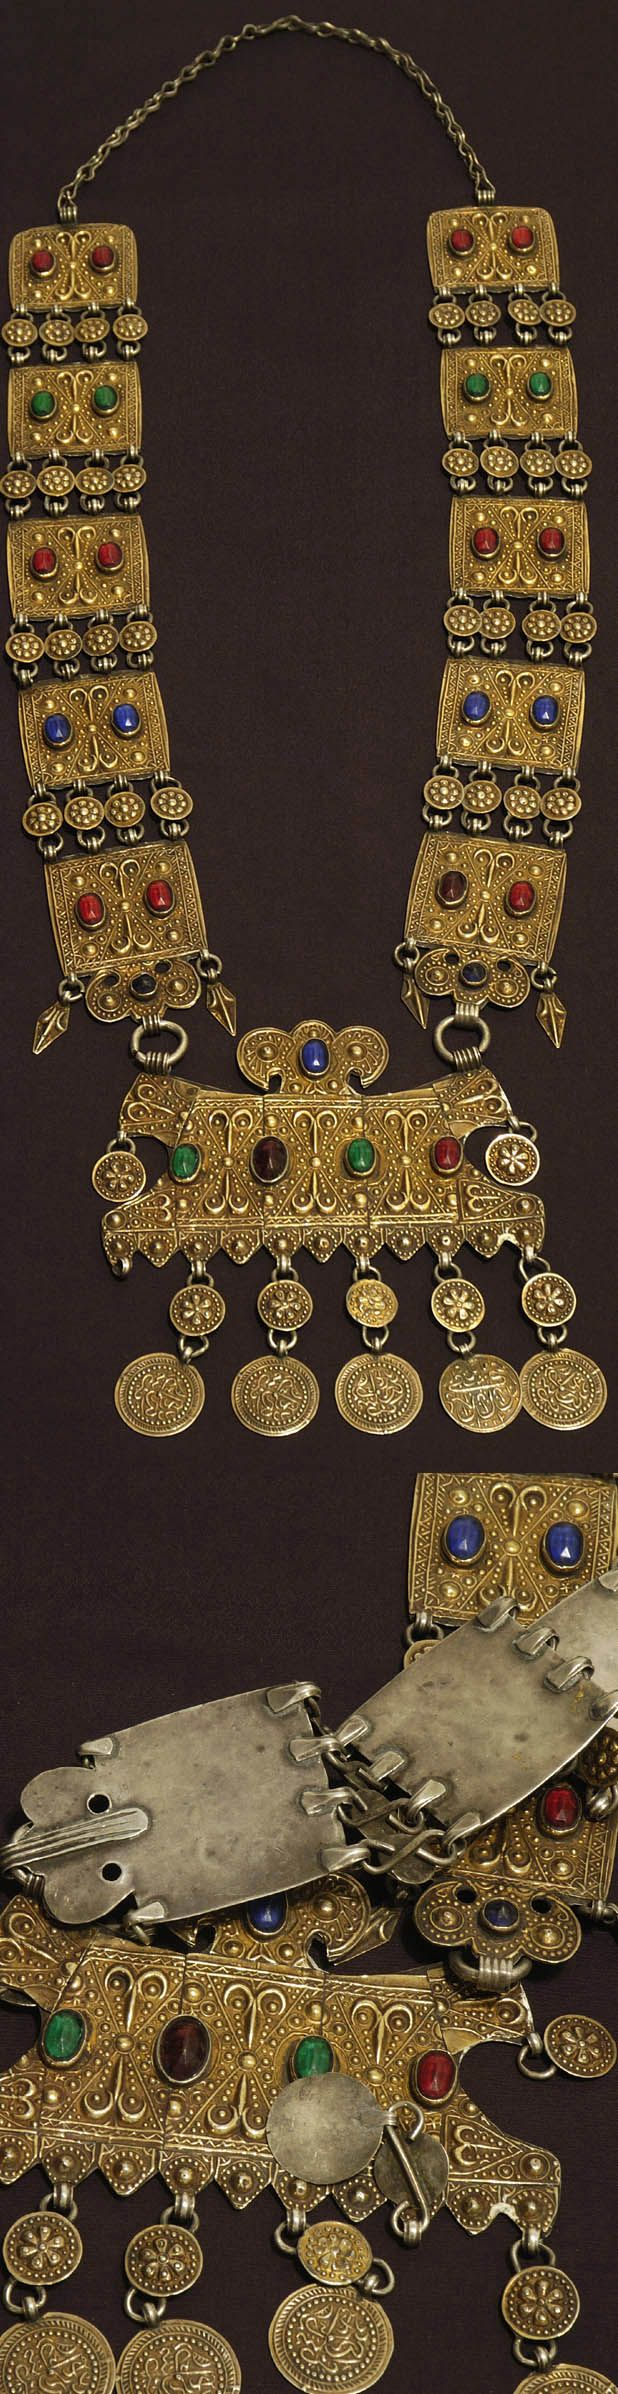 Central Asia | Silver gilt and glass necklace from the Ersari Turkmen people | ca. 1910